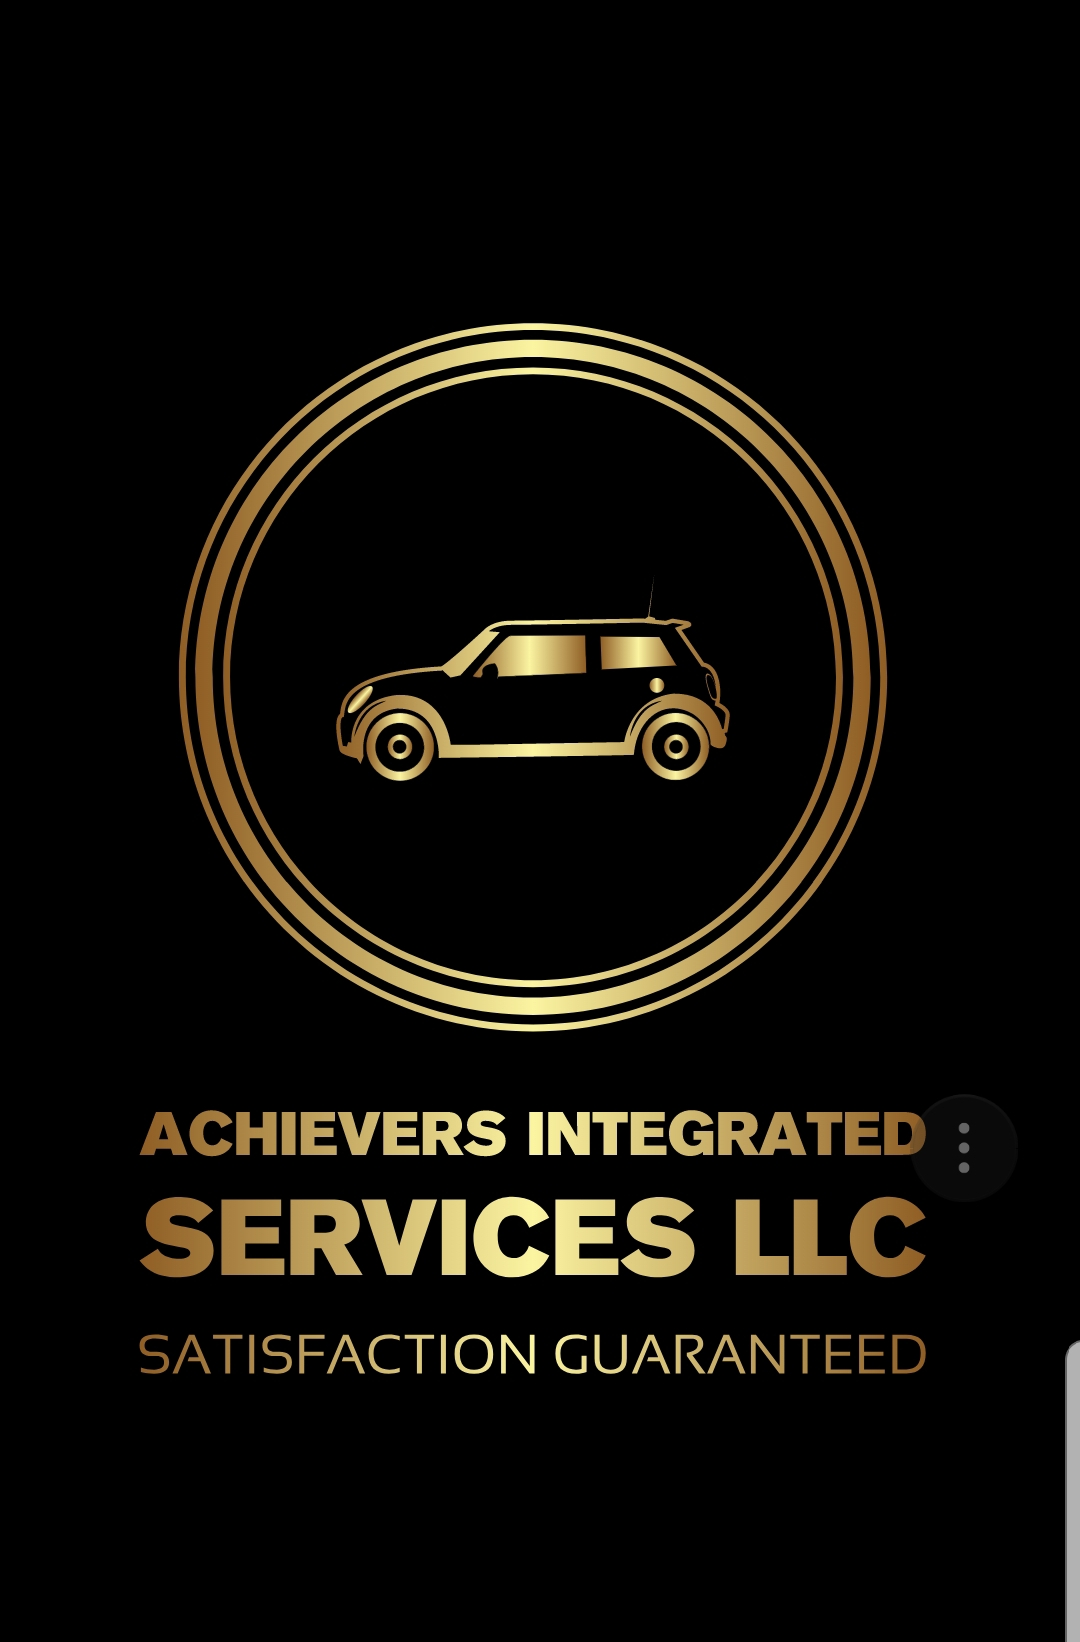 Achievers integrated services llc